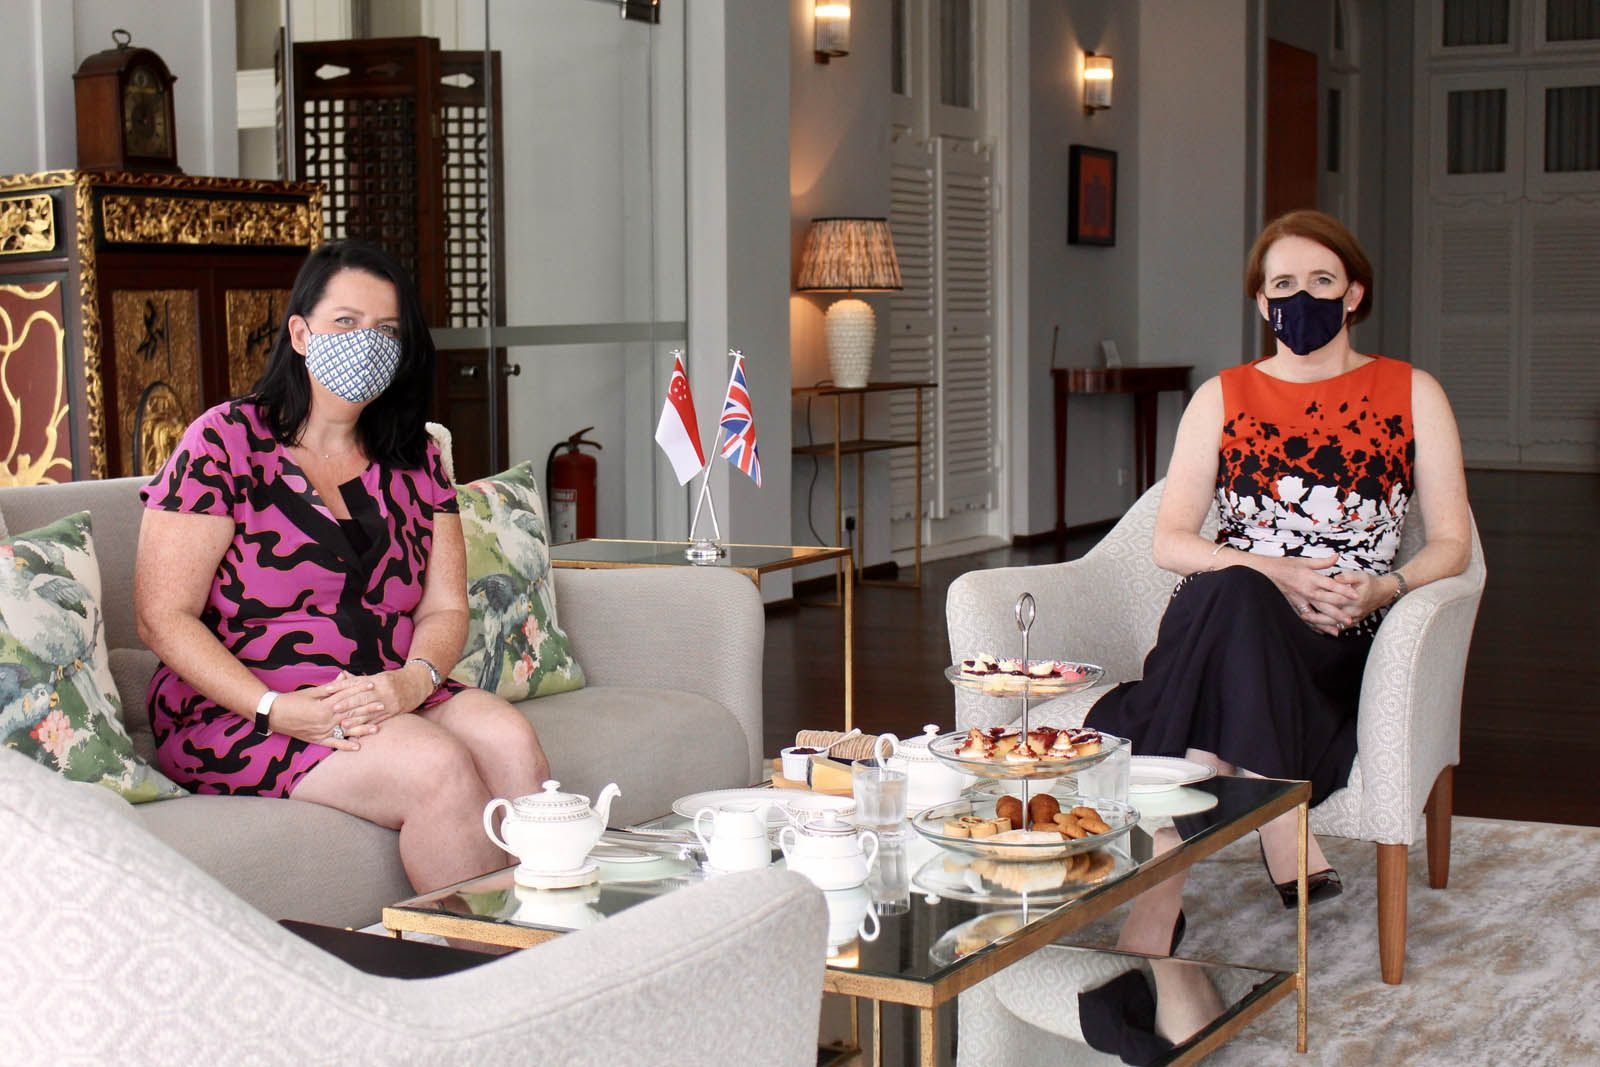 Her Excellency Kara Owen, right, and Charlotte Wilkinson, co-founder of Singapore Restaurant Rescue, left, having afternoon tea at Eden Hall